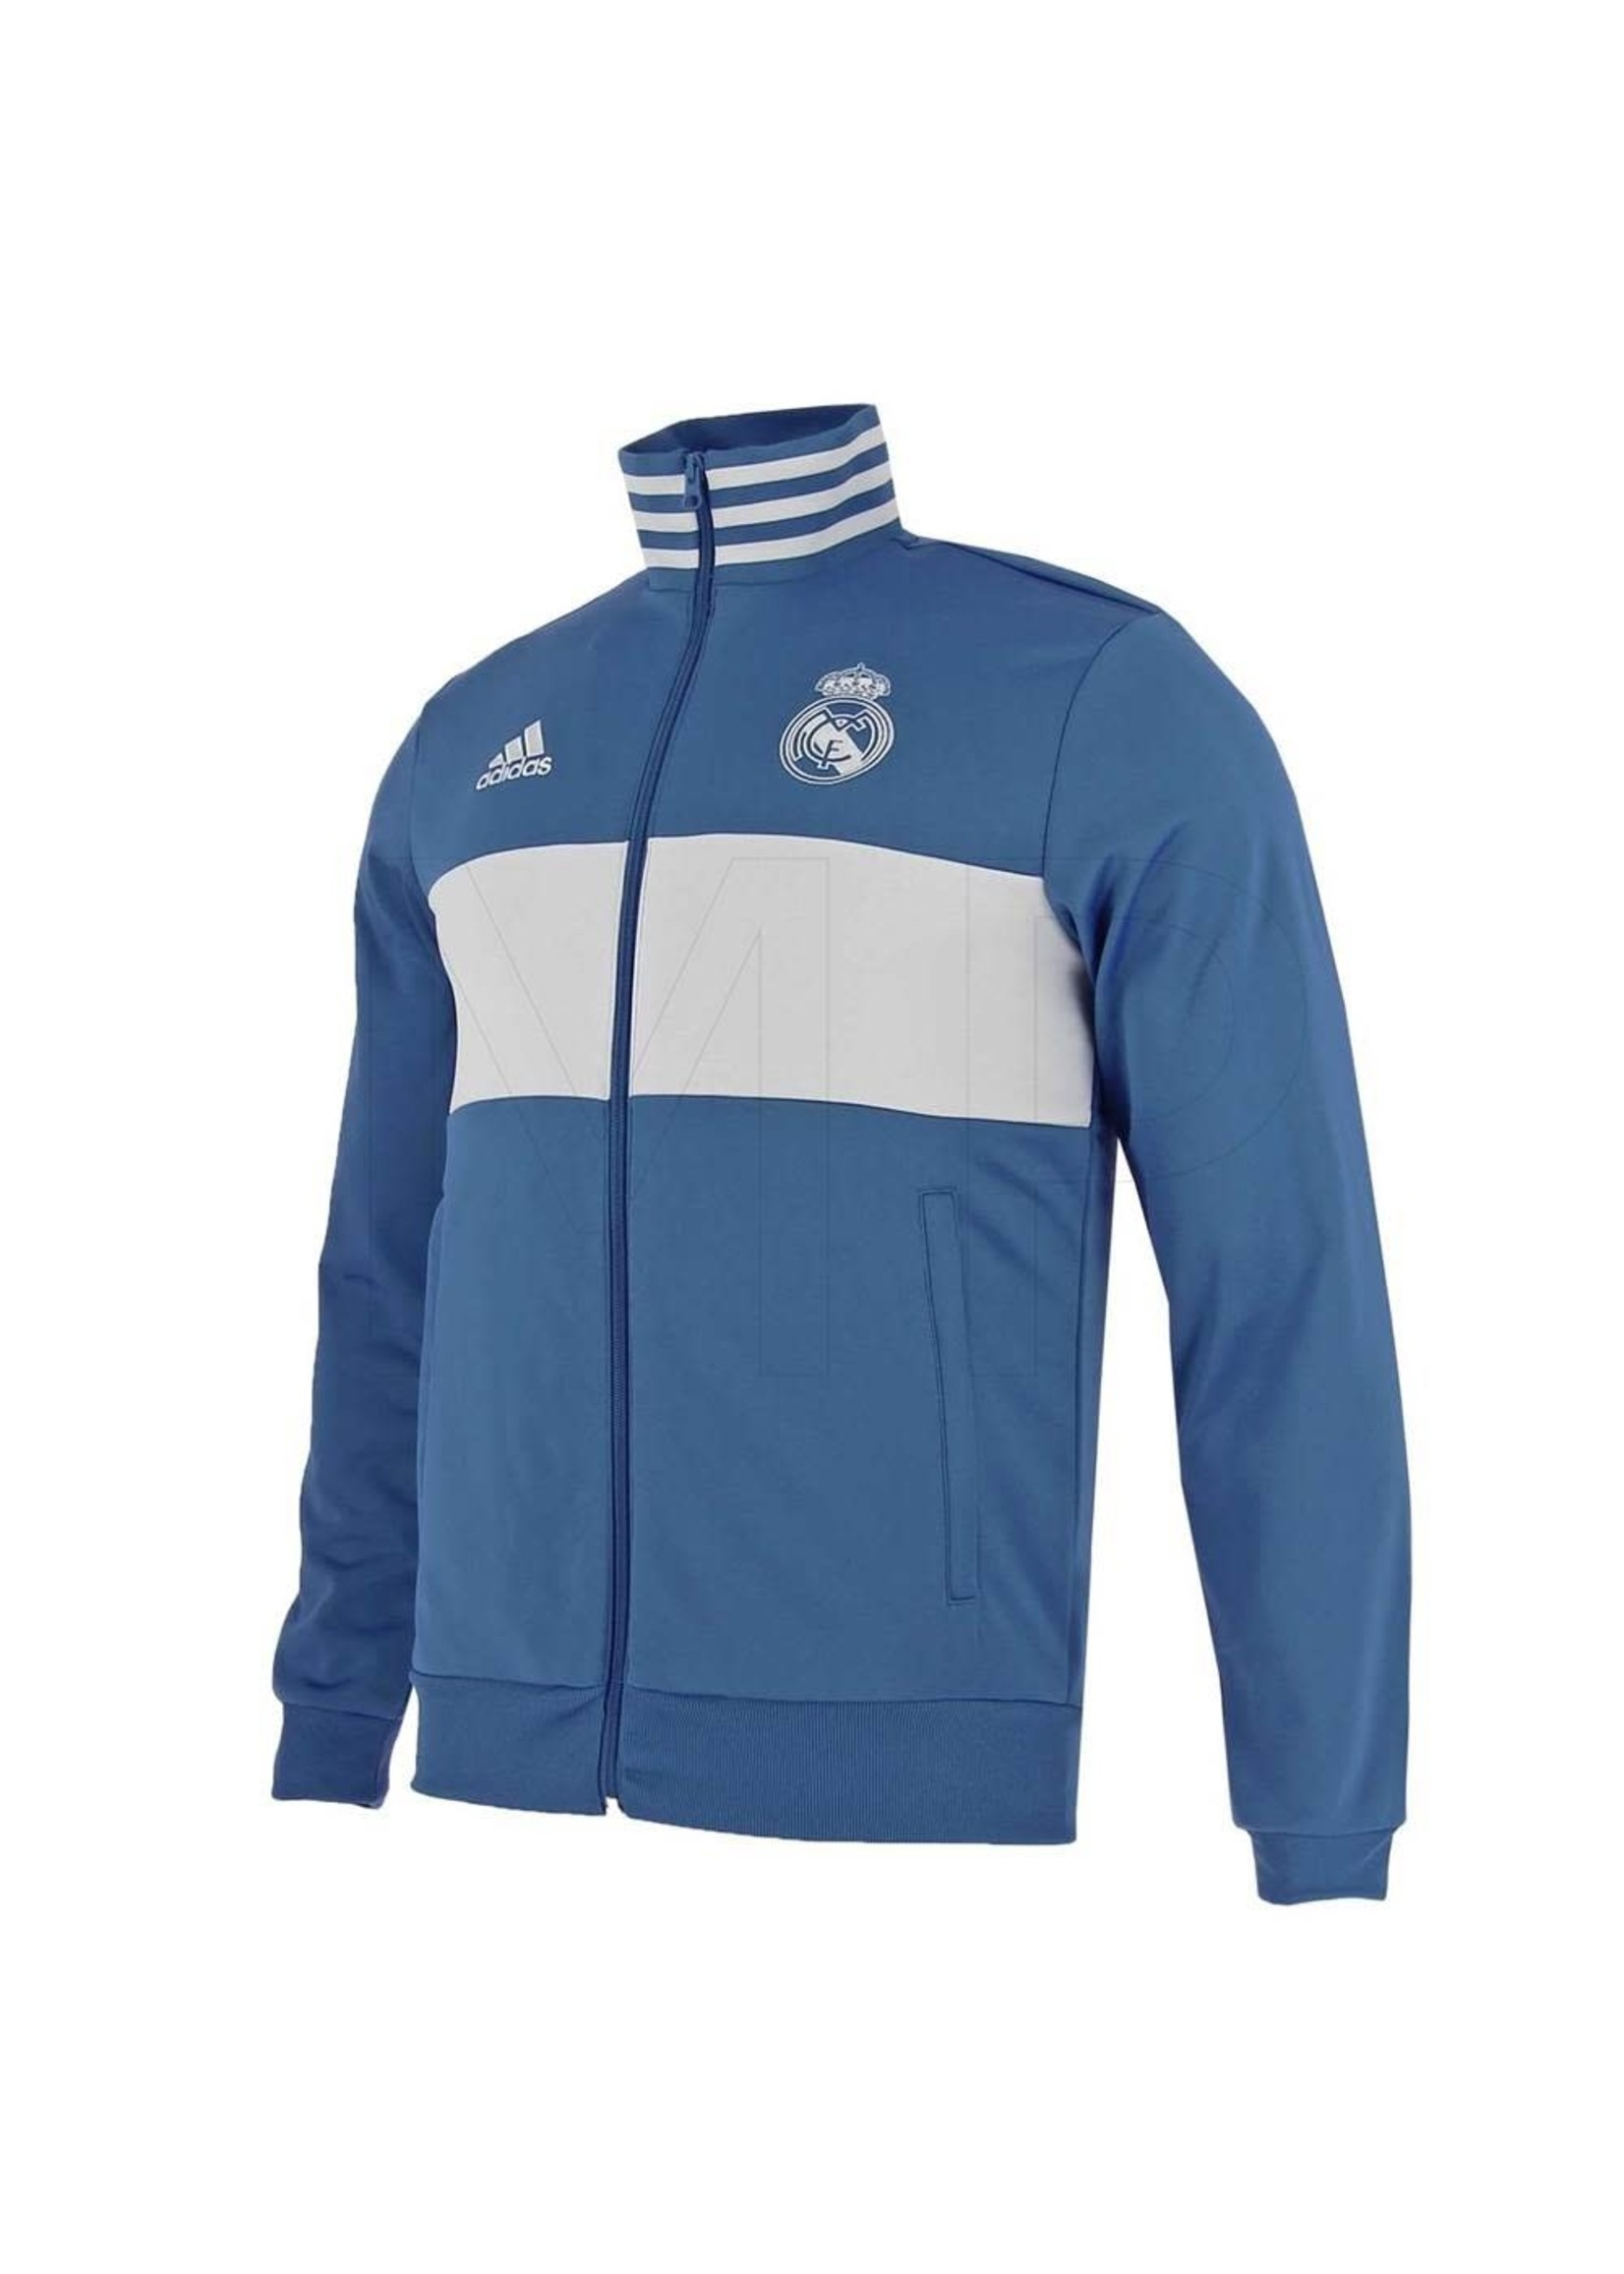 Adidas REAL 3S TRK TOP